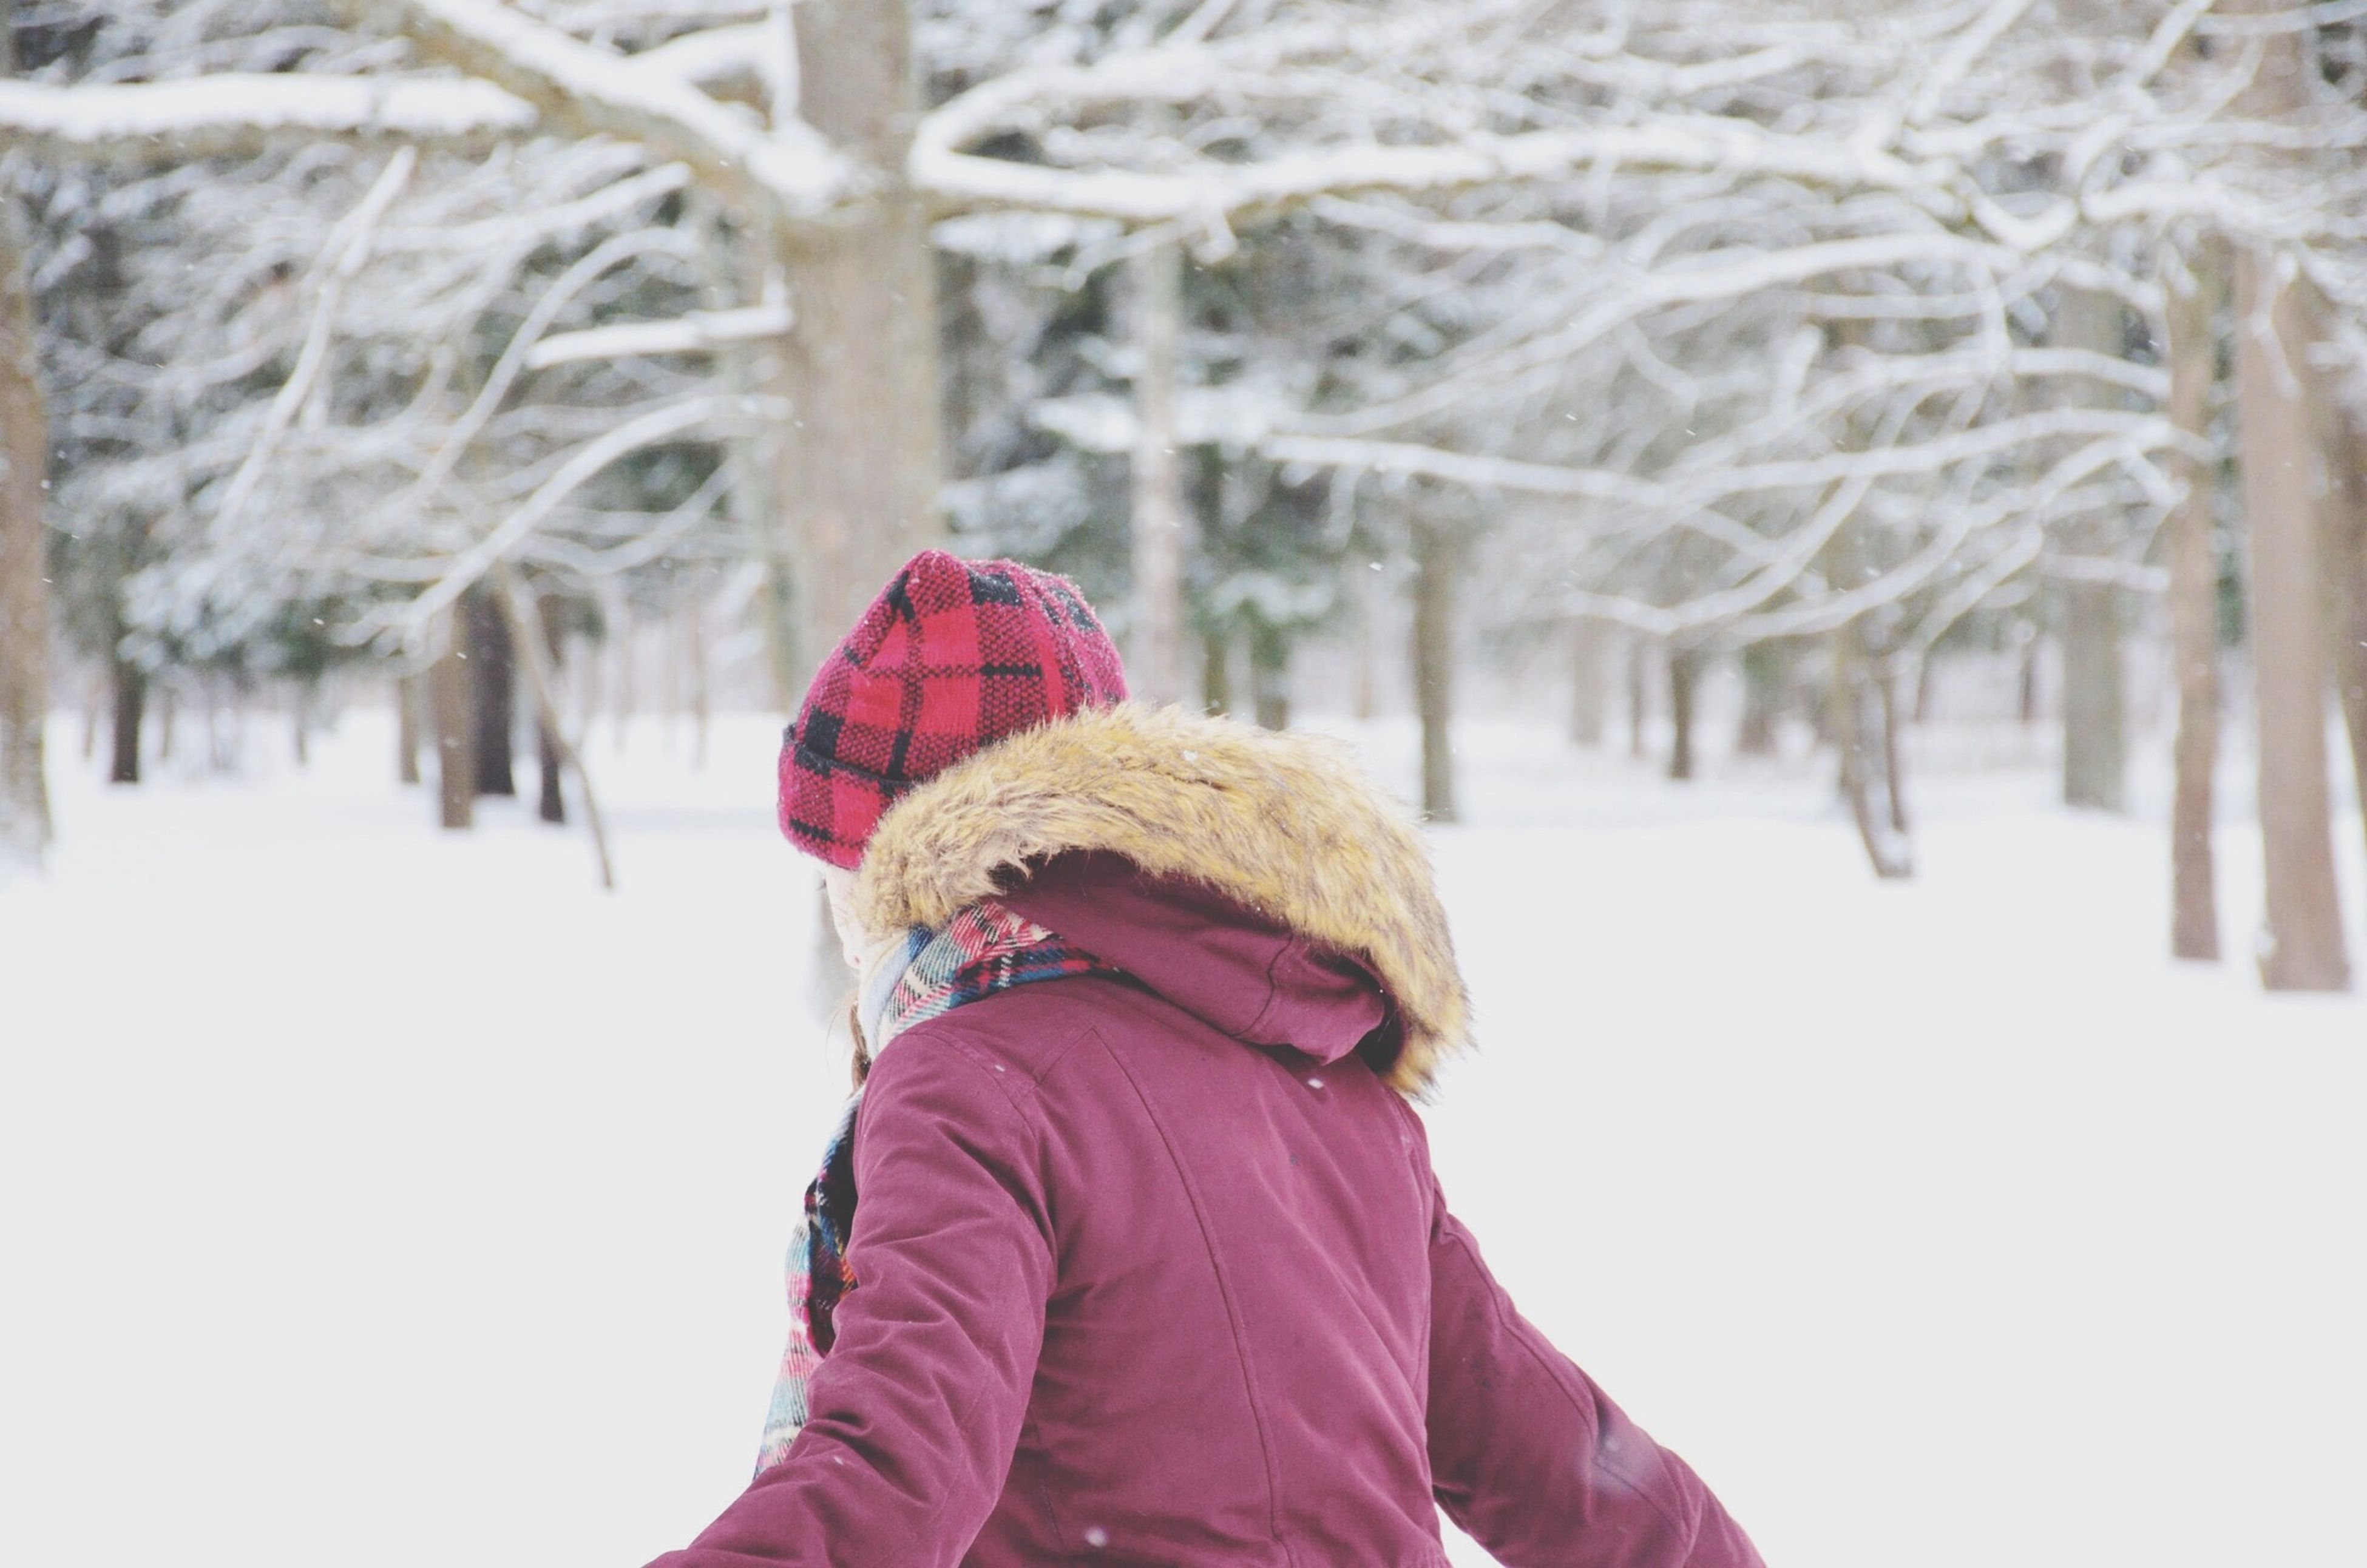 winter, snow, cold temperature, season, warm clothing, lifestyles, leisure activity, weather, rear view, focus on foreground, covering, standing, frozen, men, casual clothing, knit hat, umbrella, day